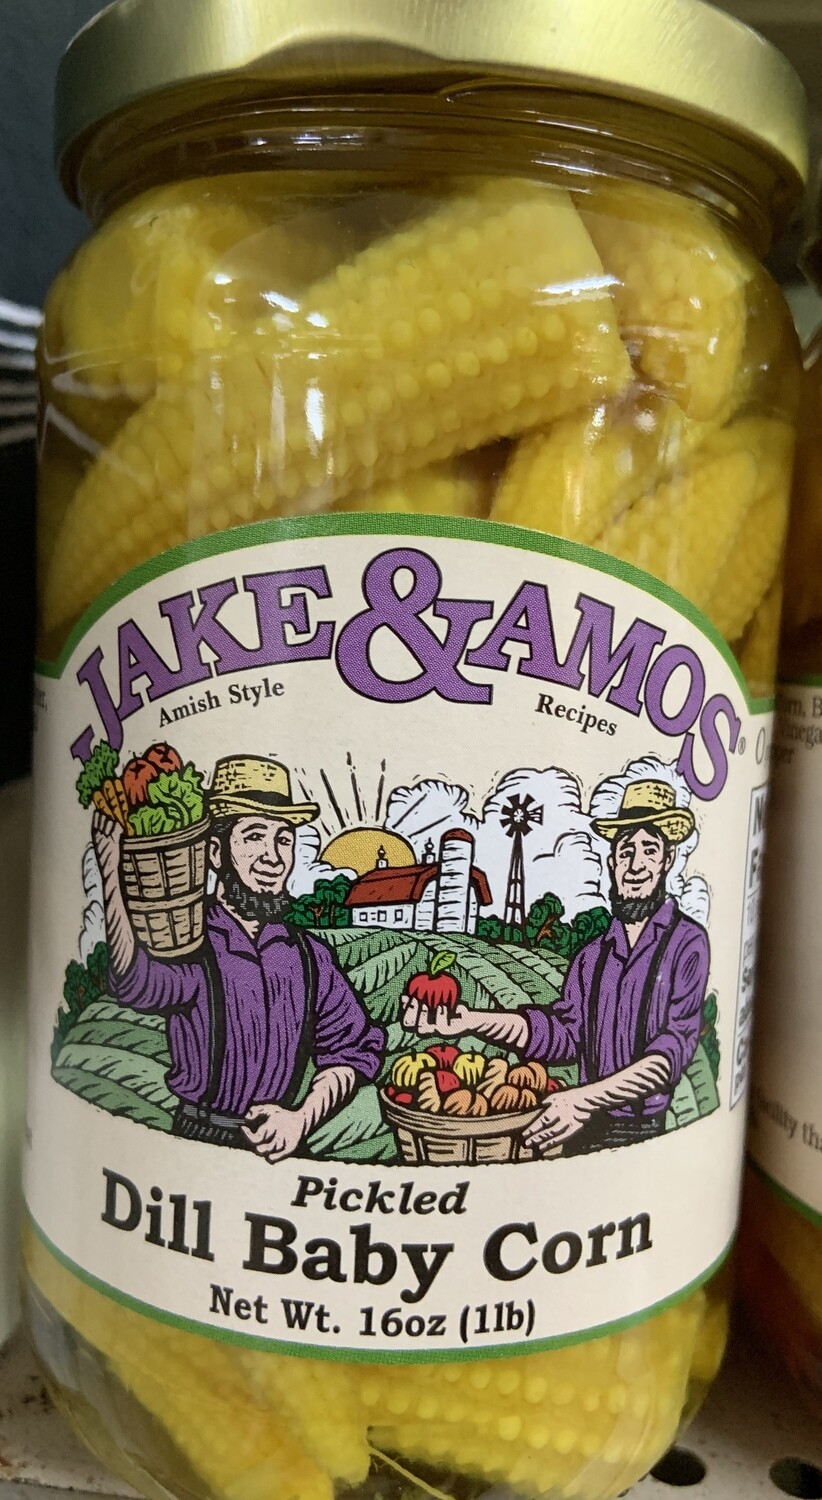 Jake & Amos Pickled Dill Baby Corn 16 oz